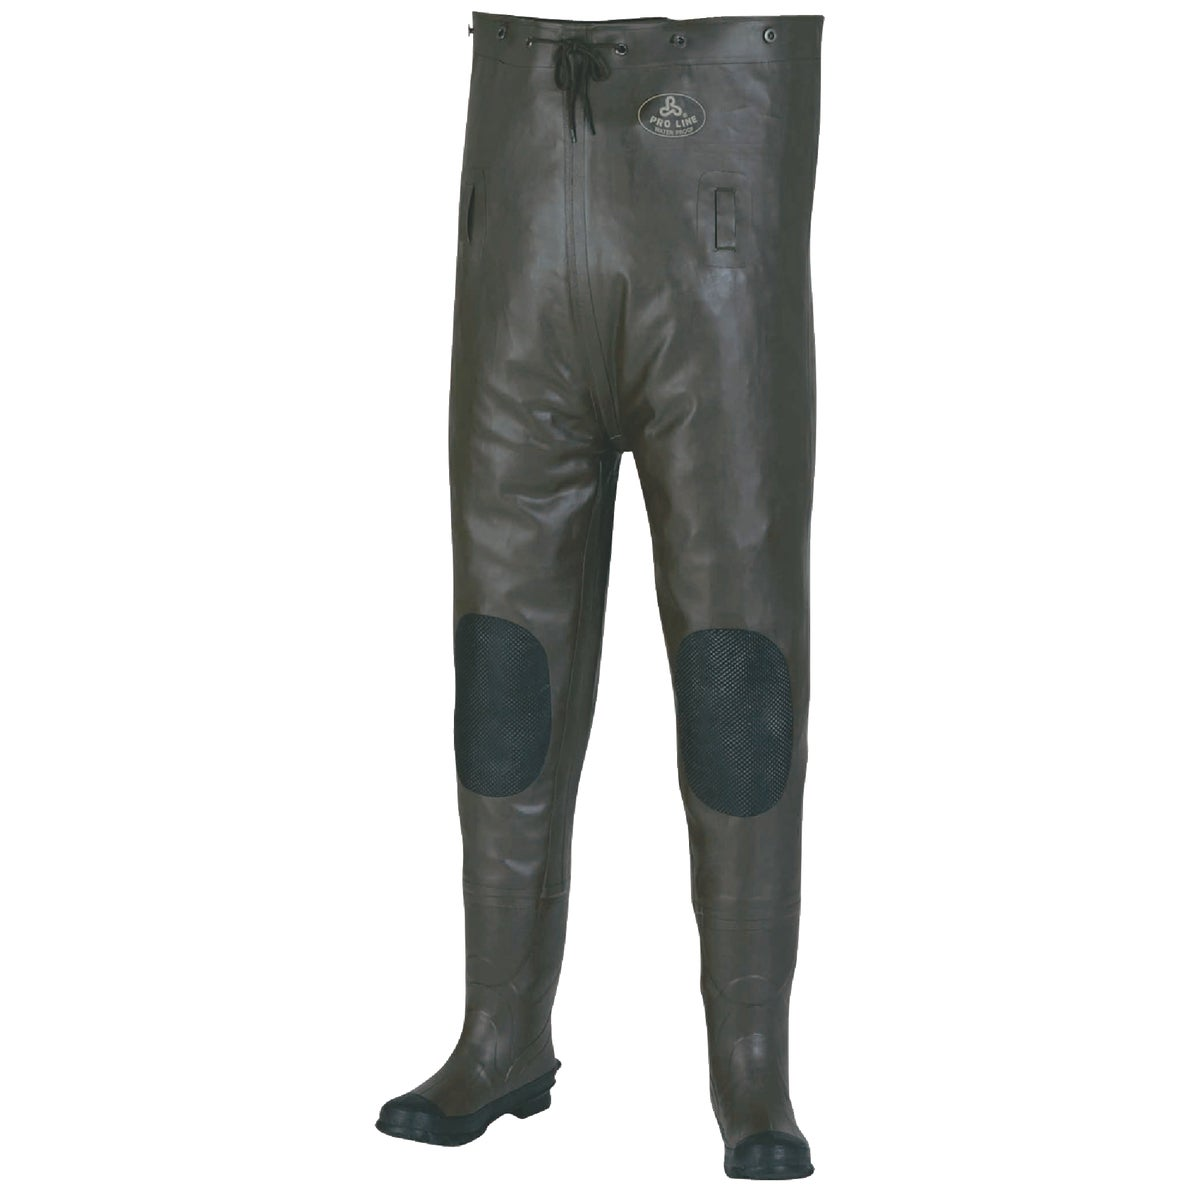 SZ 11 CHEST WADER - 2012-11 by Pro Line Mfg Co